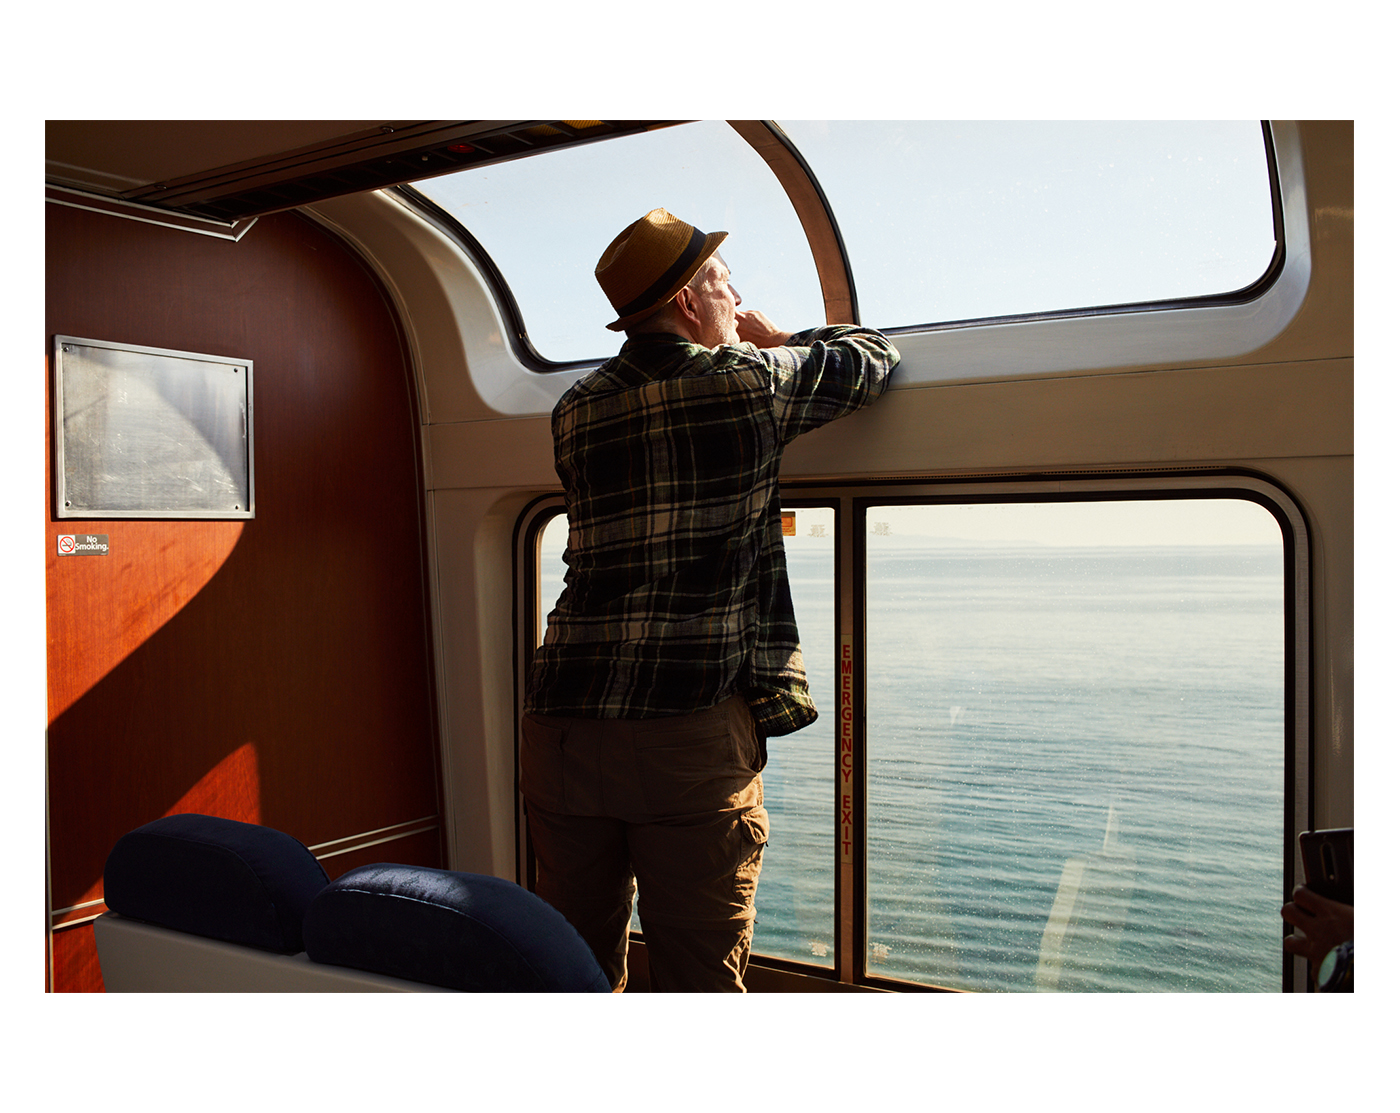 Coast Starlight Amtrak Journey, photographed by Brad Torchia.  Brad Torchia is an LA-based editorial and commercial photographer.